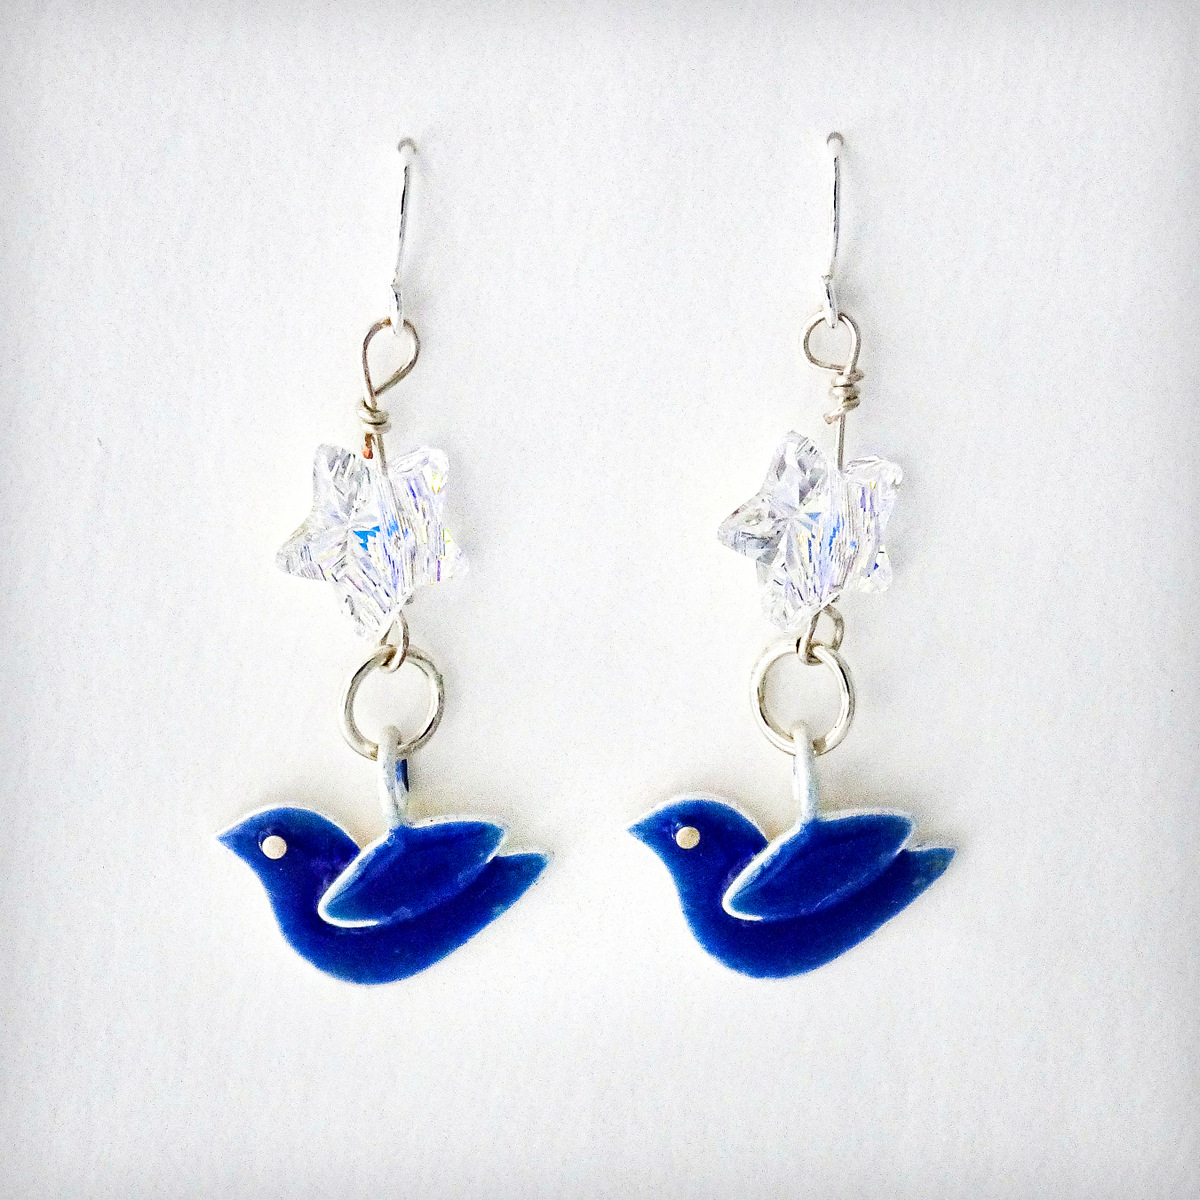 7-BLUE PANSY, D. McEachen, Bird Earrings-003.JPG